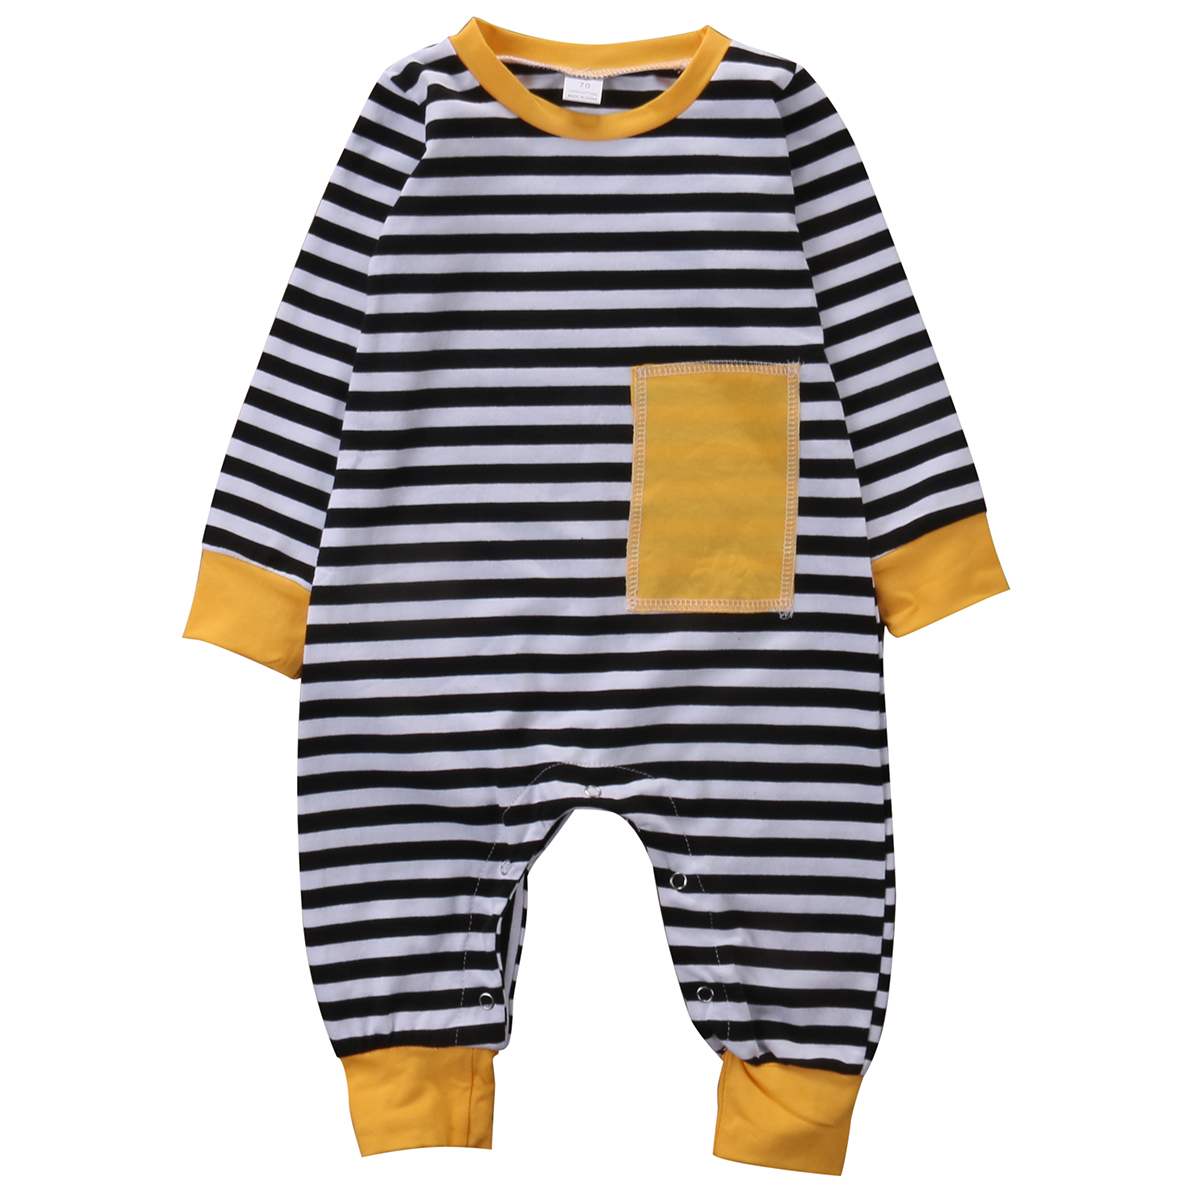 Autumn Newborn Kids Baby Boy Long Sleeve Romper Striped ...